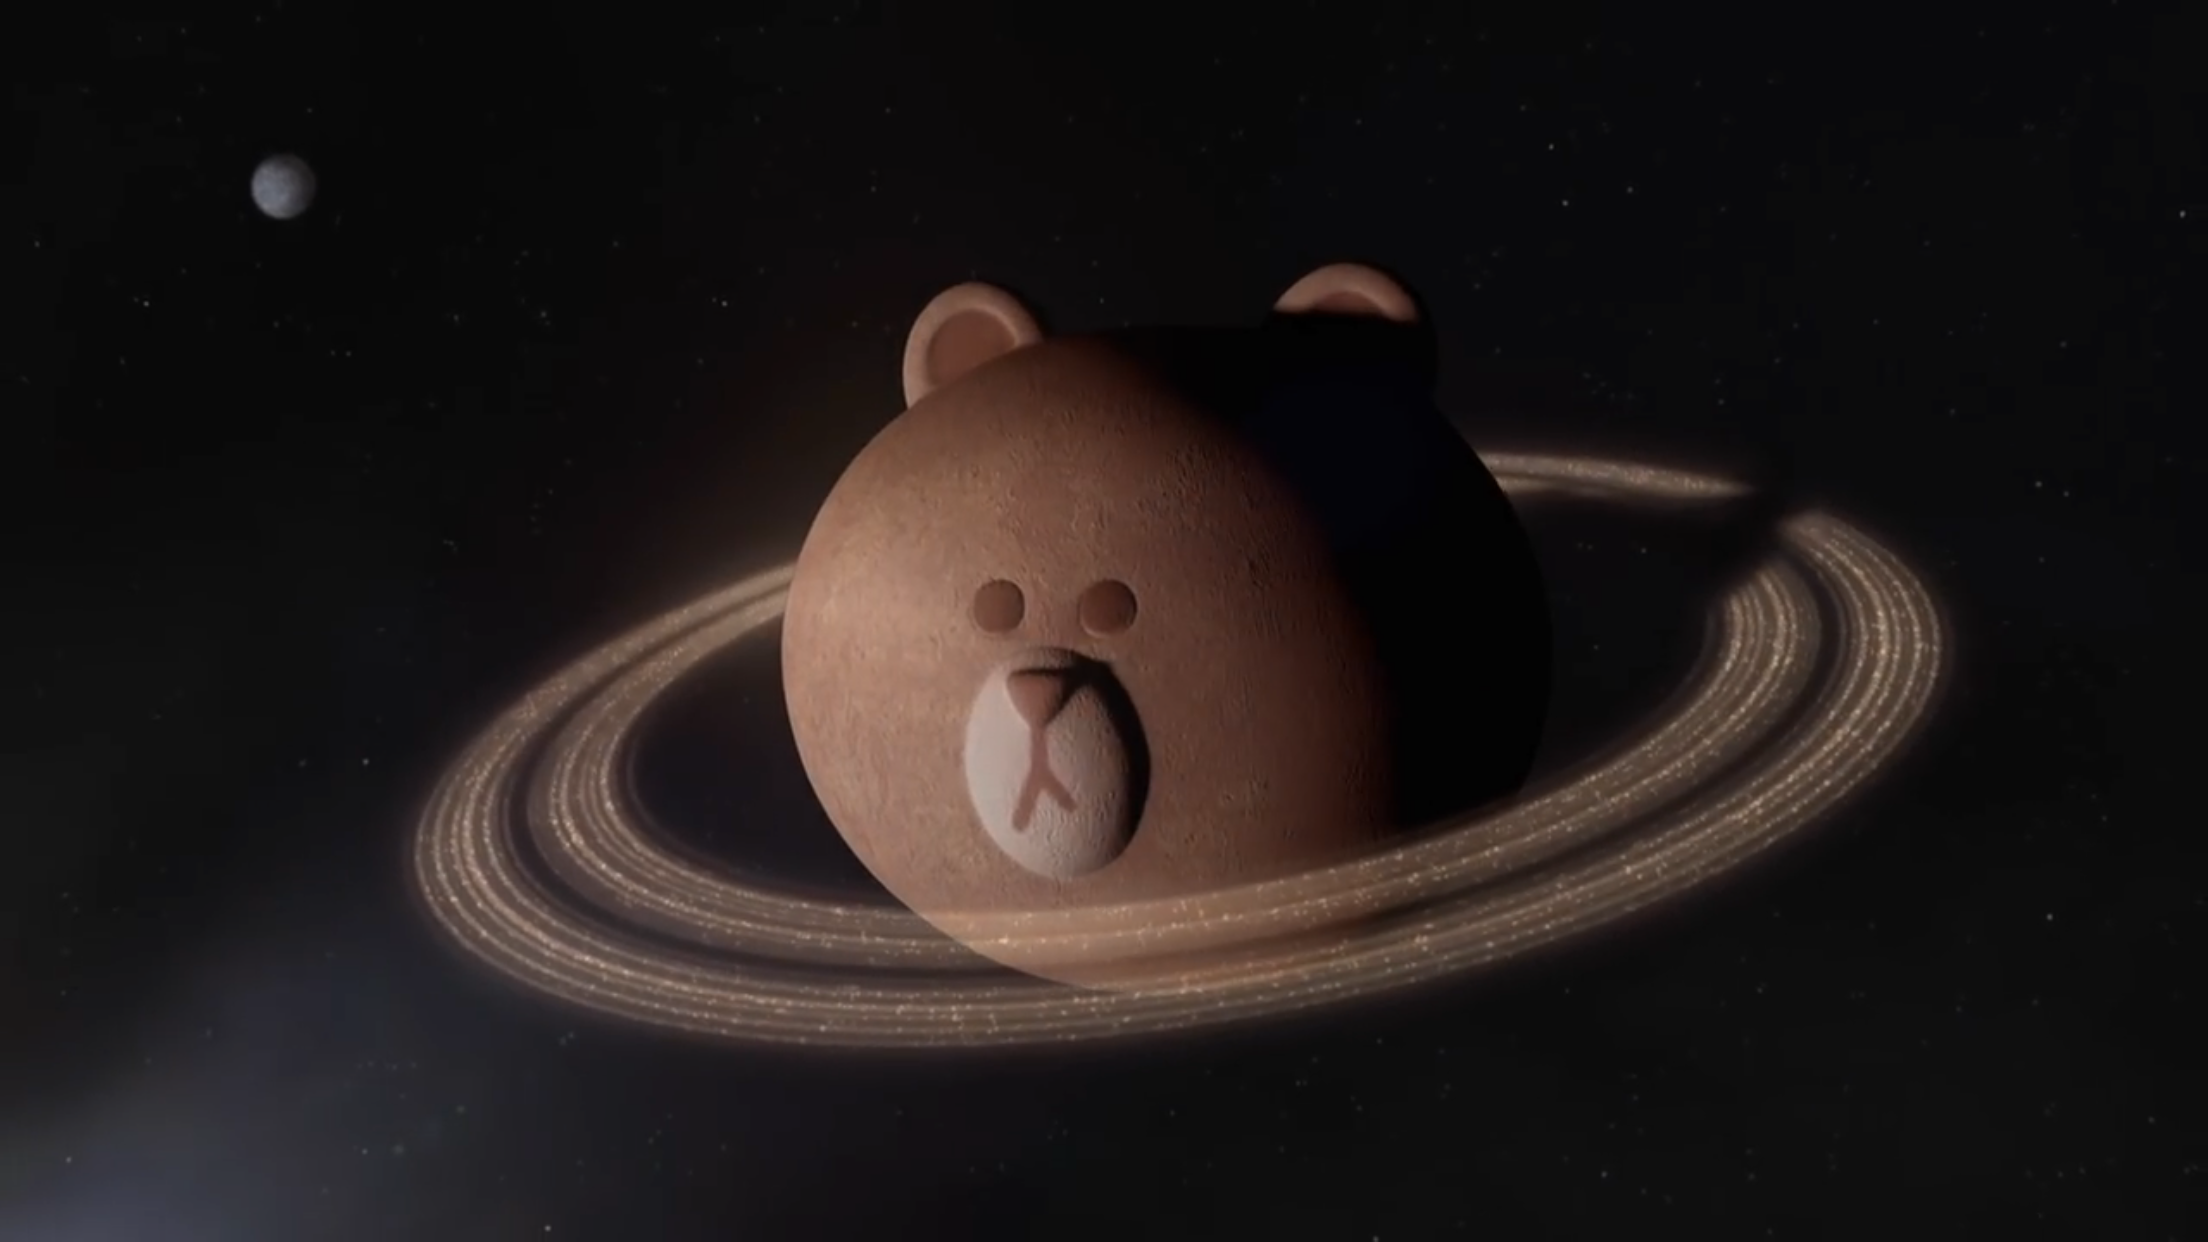 3c349ac49f3 Pin by Mahe on Cony and Brown in 2019 | Line friends, Planets, Celestial